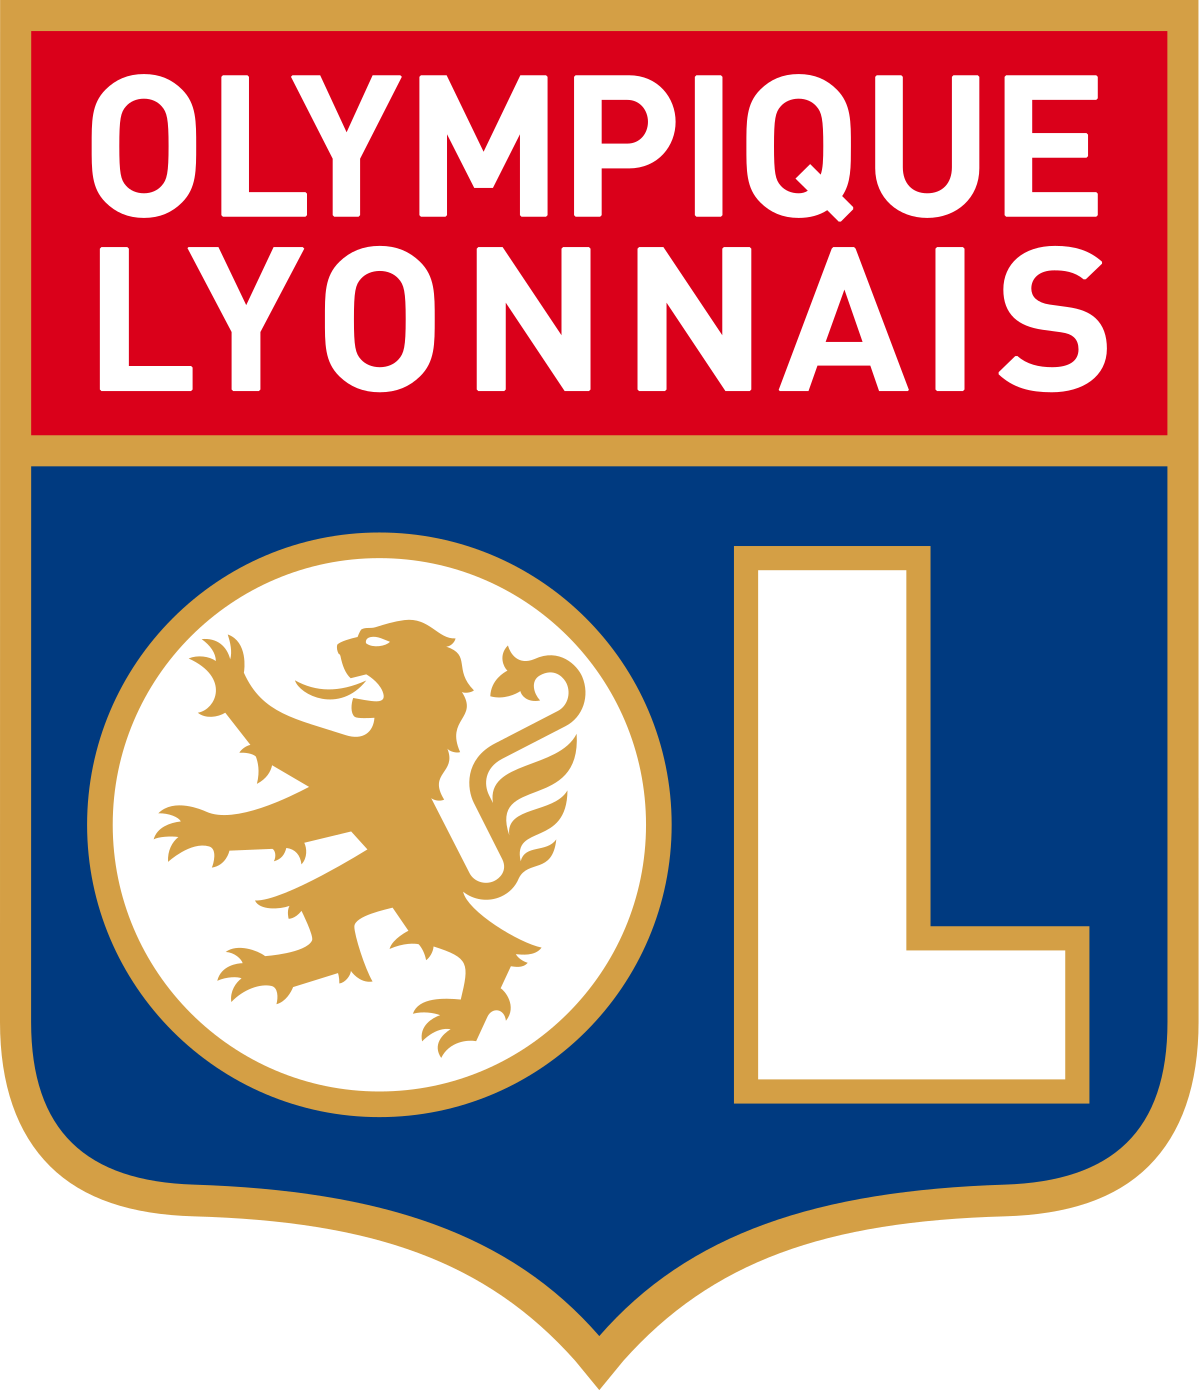 Pin By Football Icons On French Football Football Logo Lyon Football Team Logos